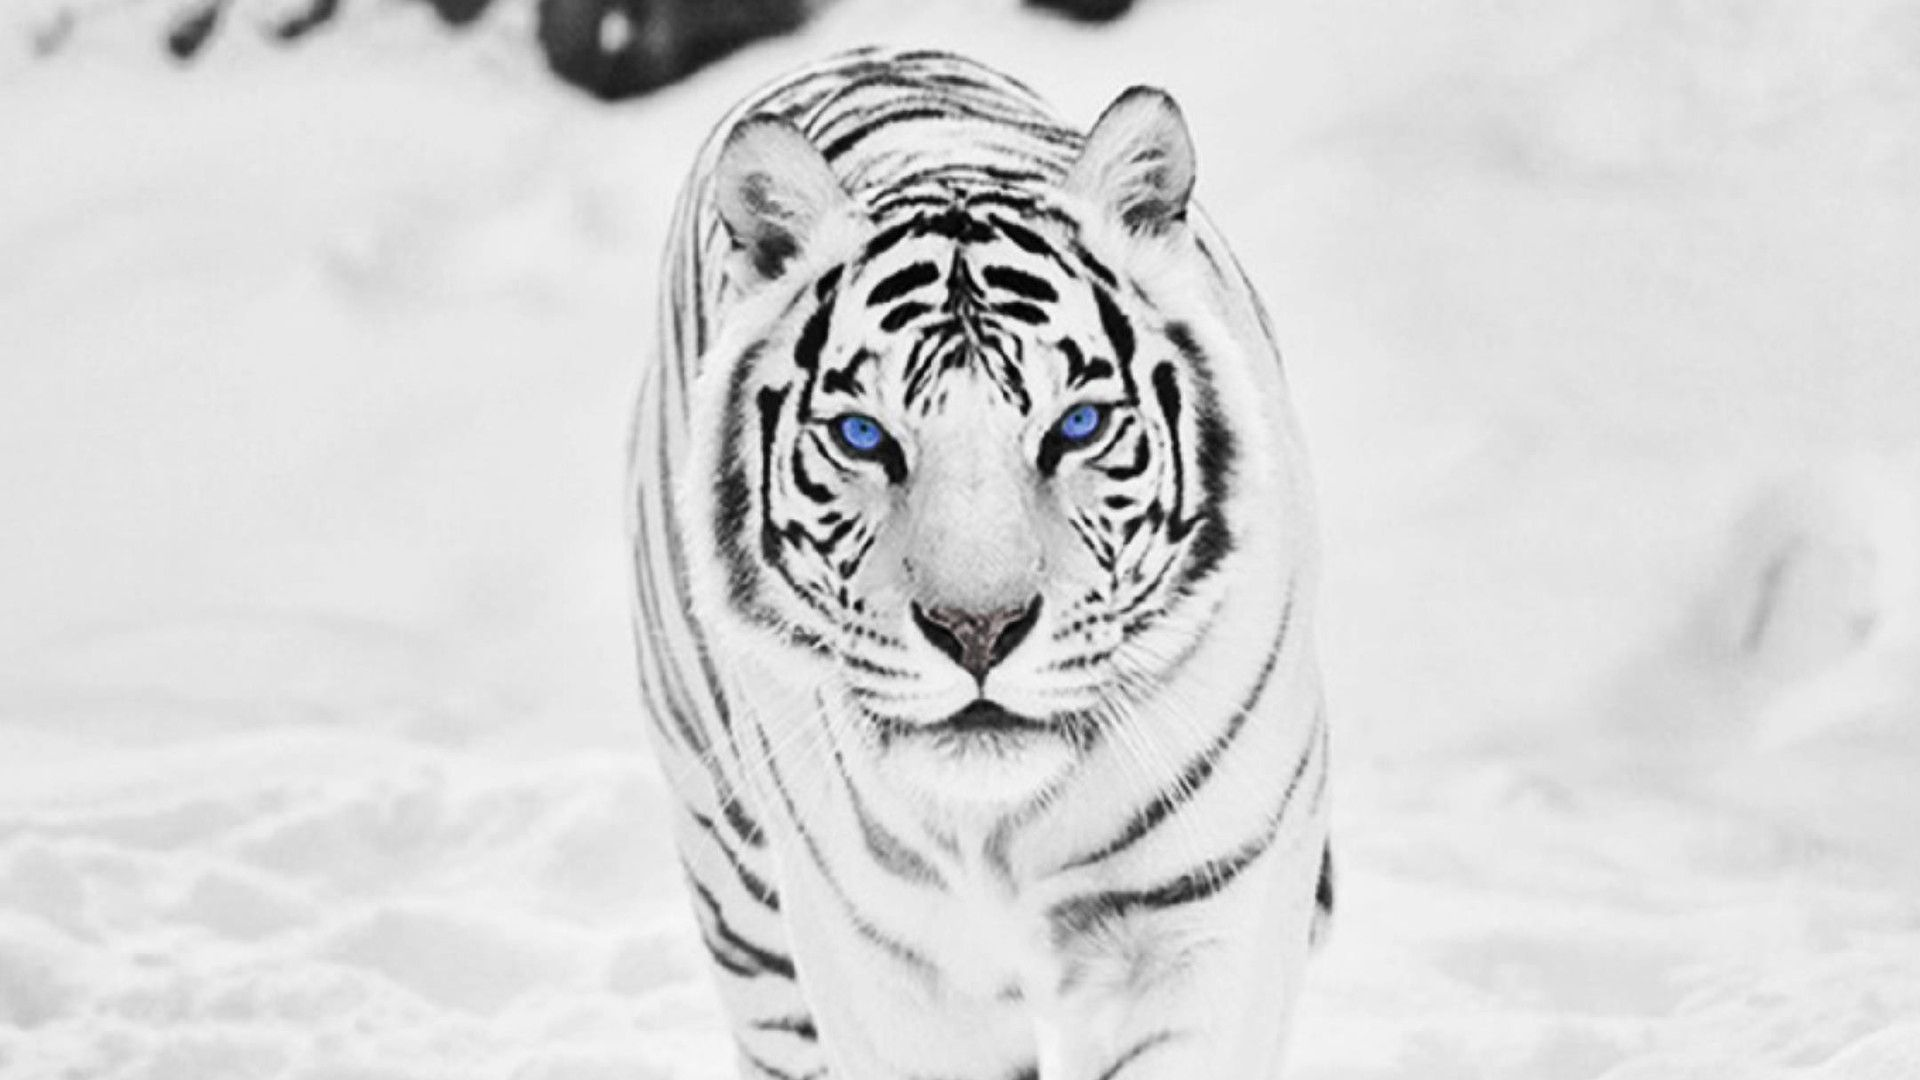 White Tiger Background for Your iPhone 6 Plus